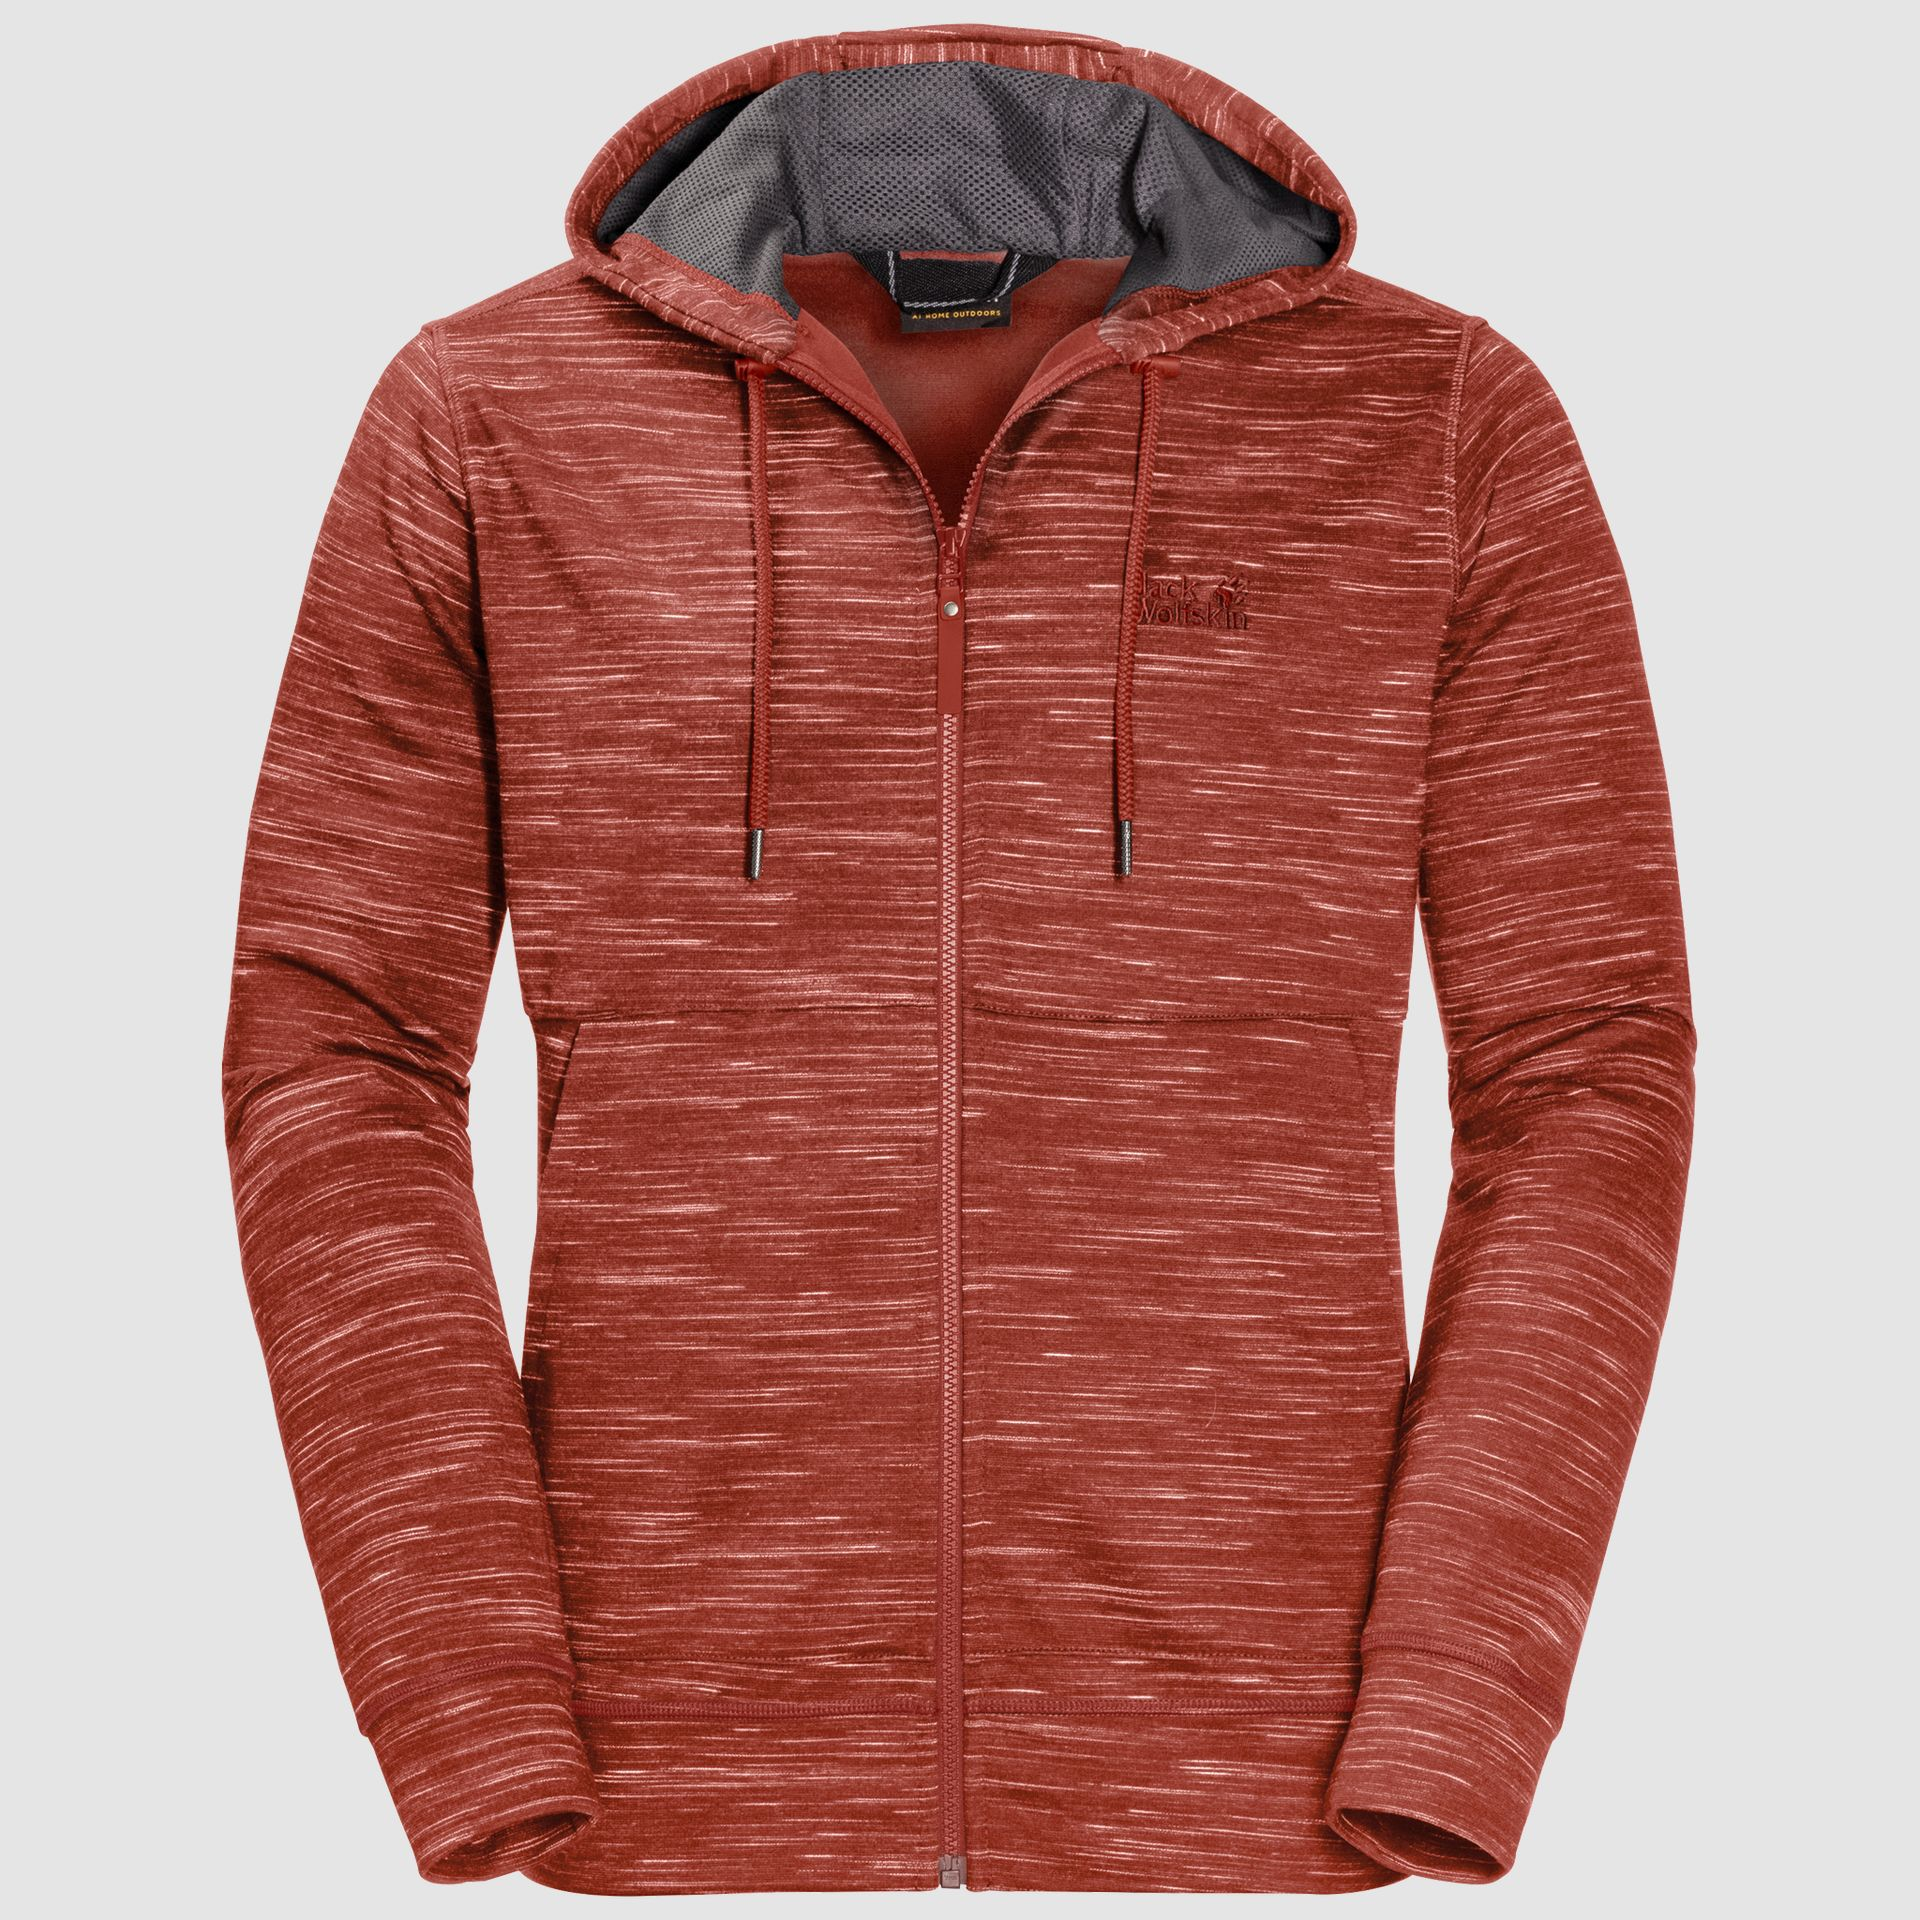 1706201 3740 7 Oceanside Hooded Jacket Men Mexican Pepper